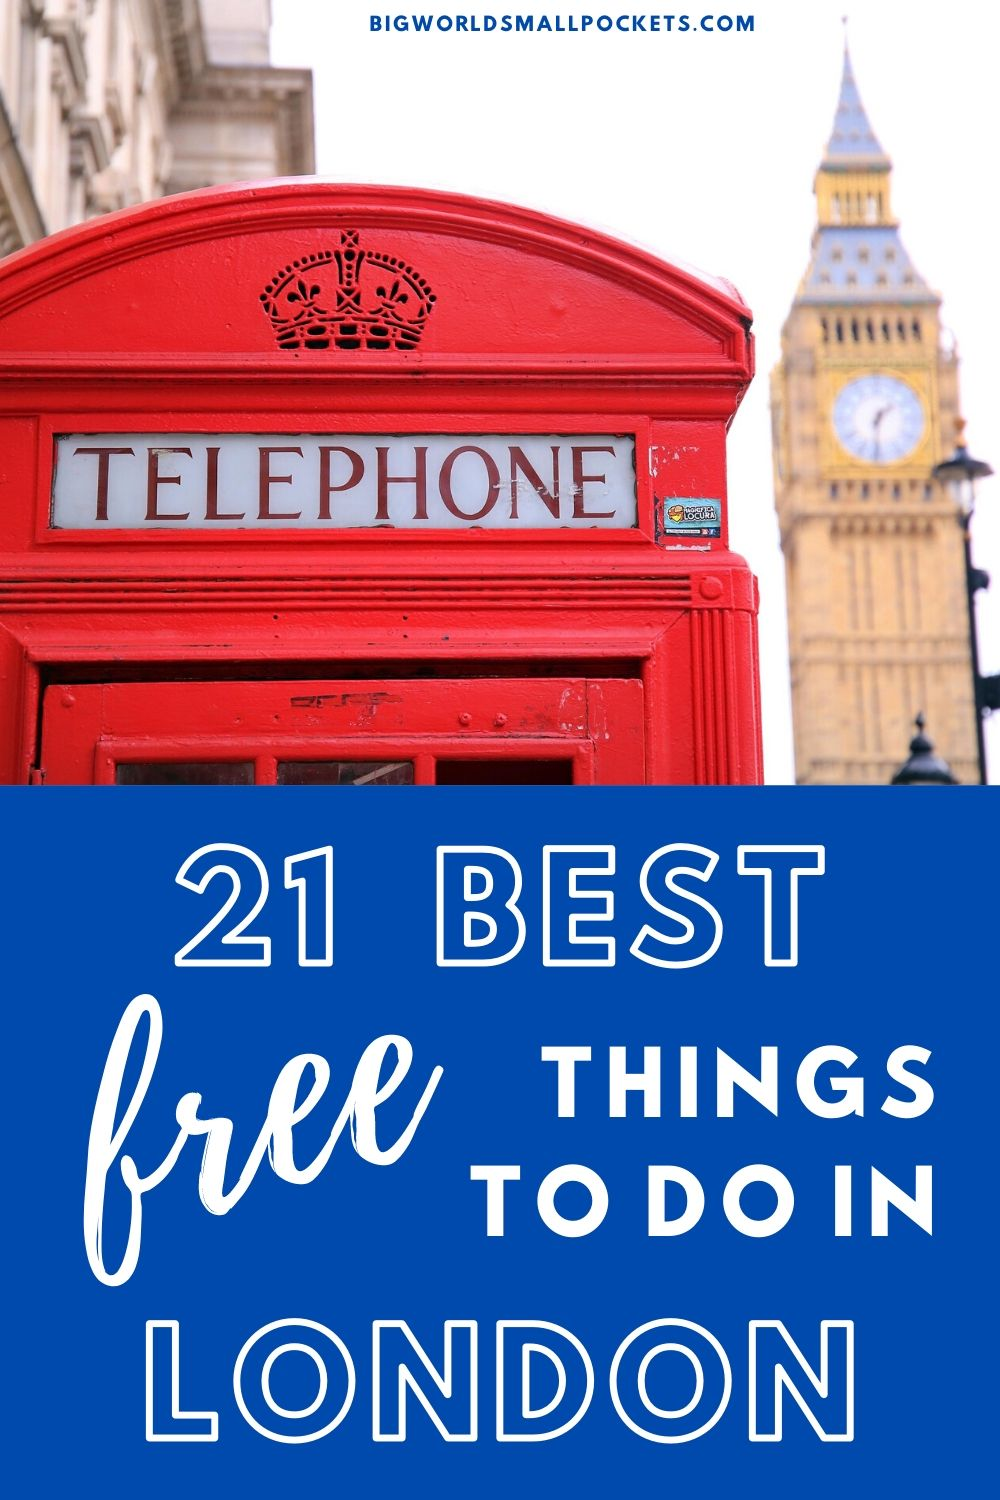 The 21 Best Free Things To Do in London